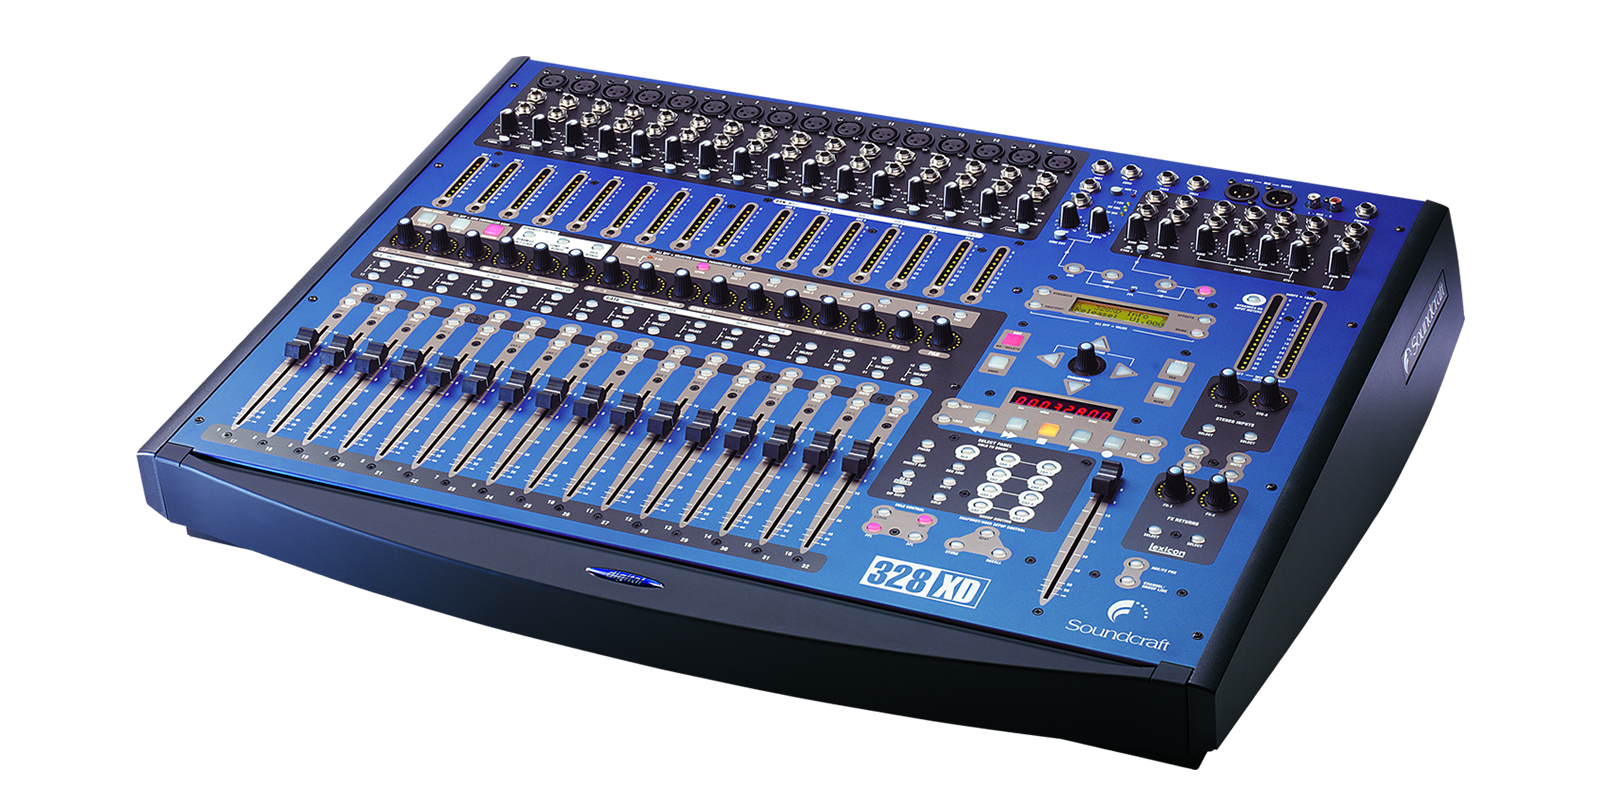 328 Xd Soundcraft Professional Audio Mixers Integrated Electronics Analog And Digital Circuits Systems Tiny Square